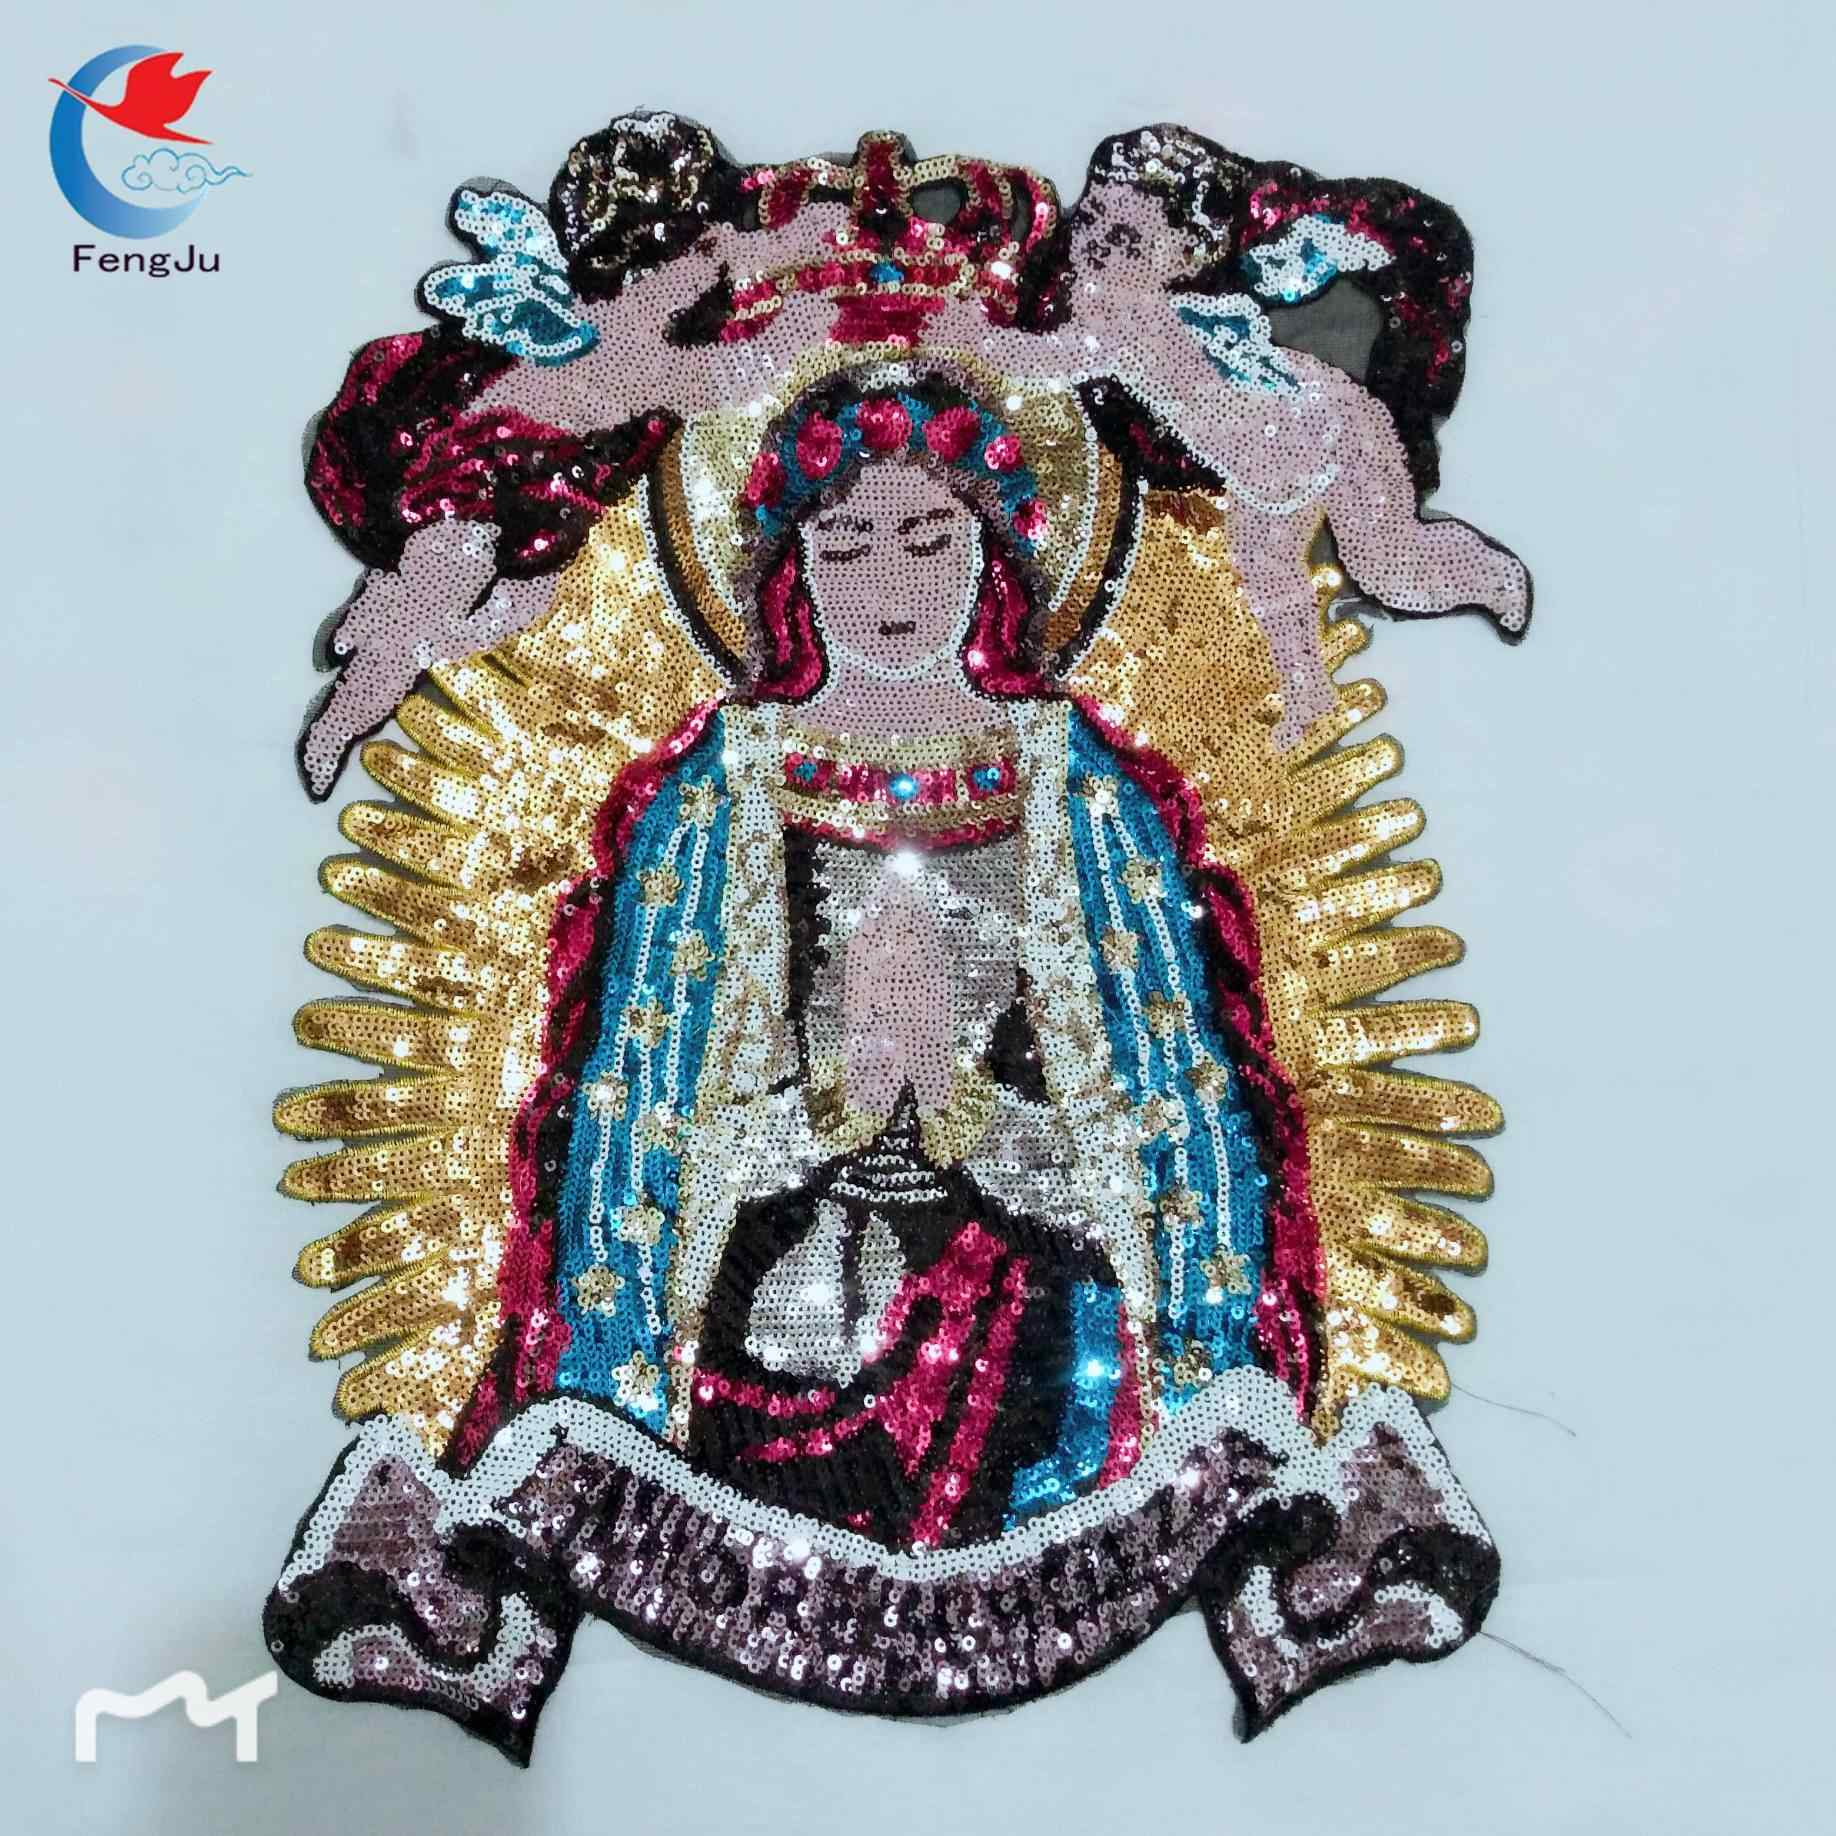 FengJu Angel of Jesus Beaded sequin Madonna patches embroidery fabric  patches brand fashion large applique patches 5d4c2116a65e